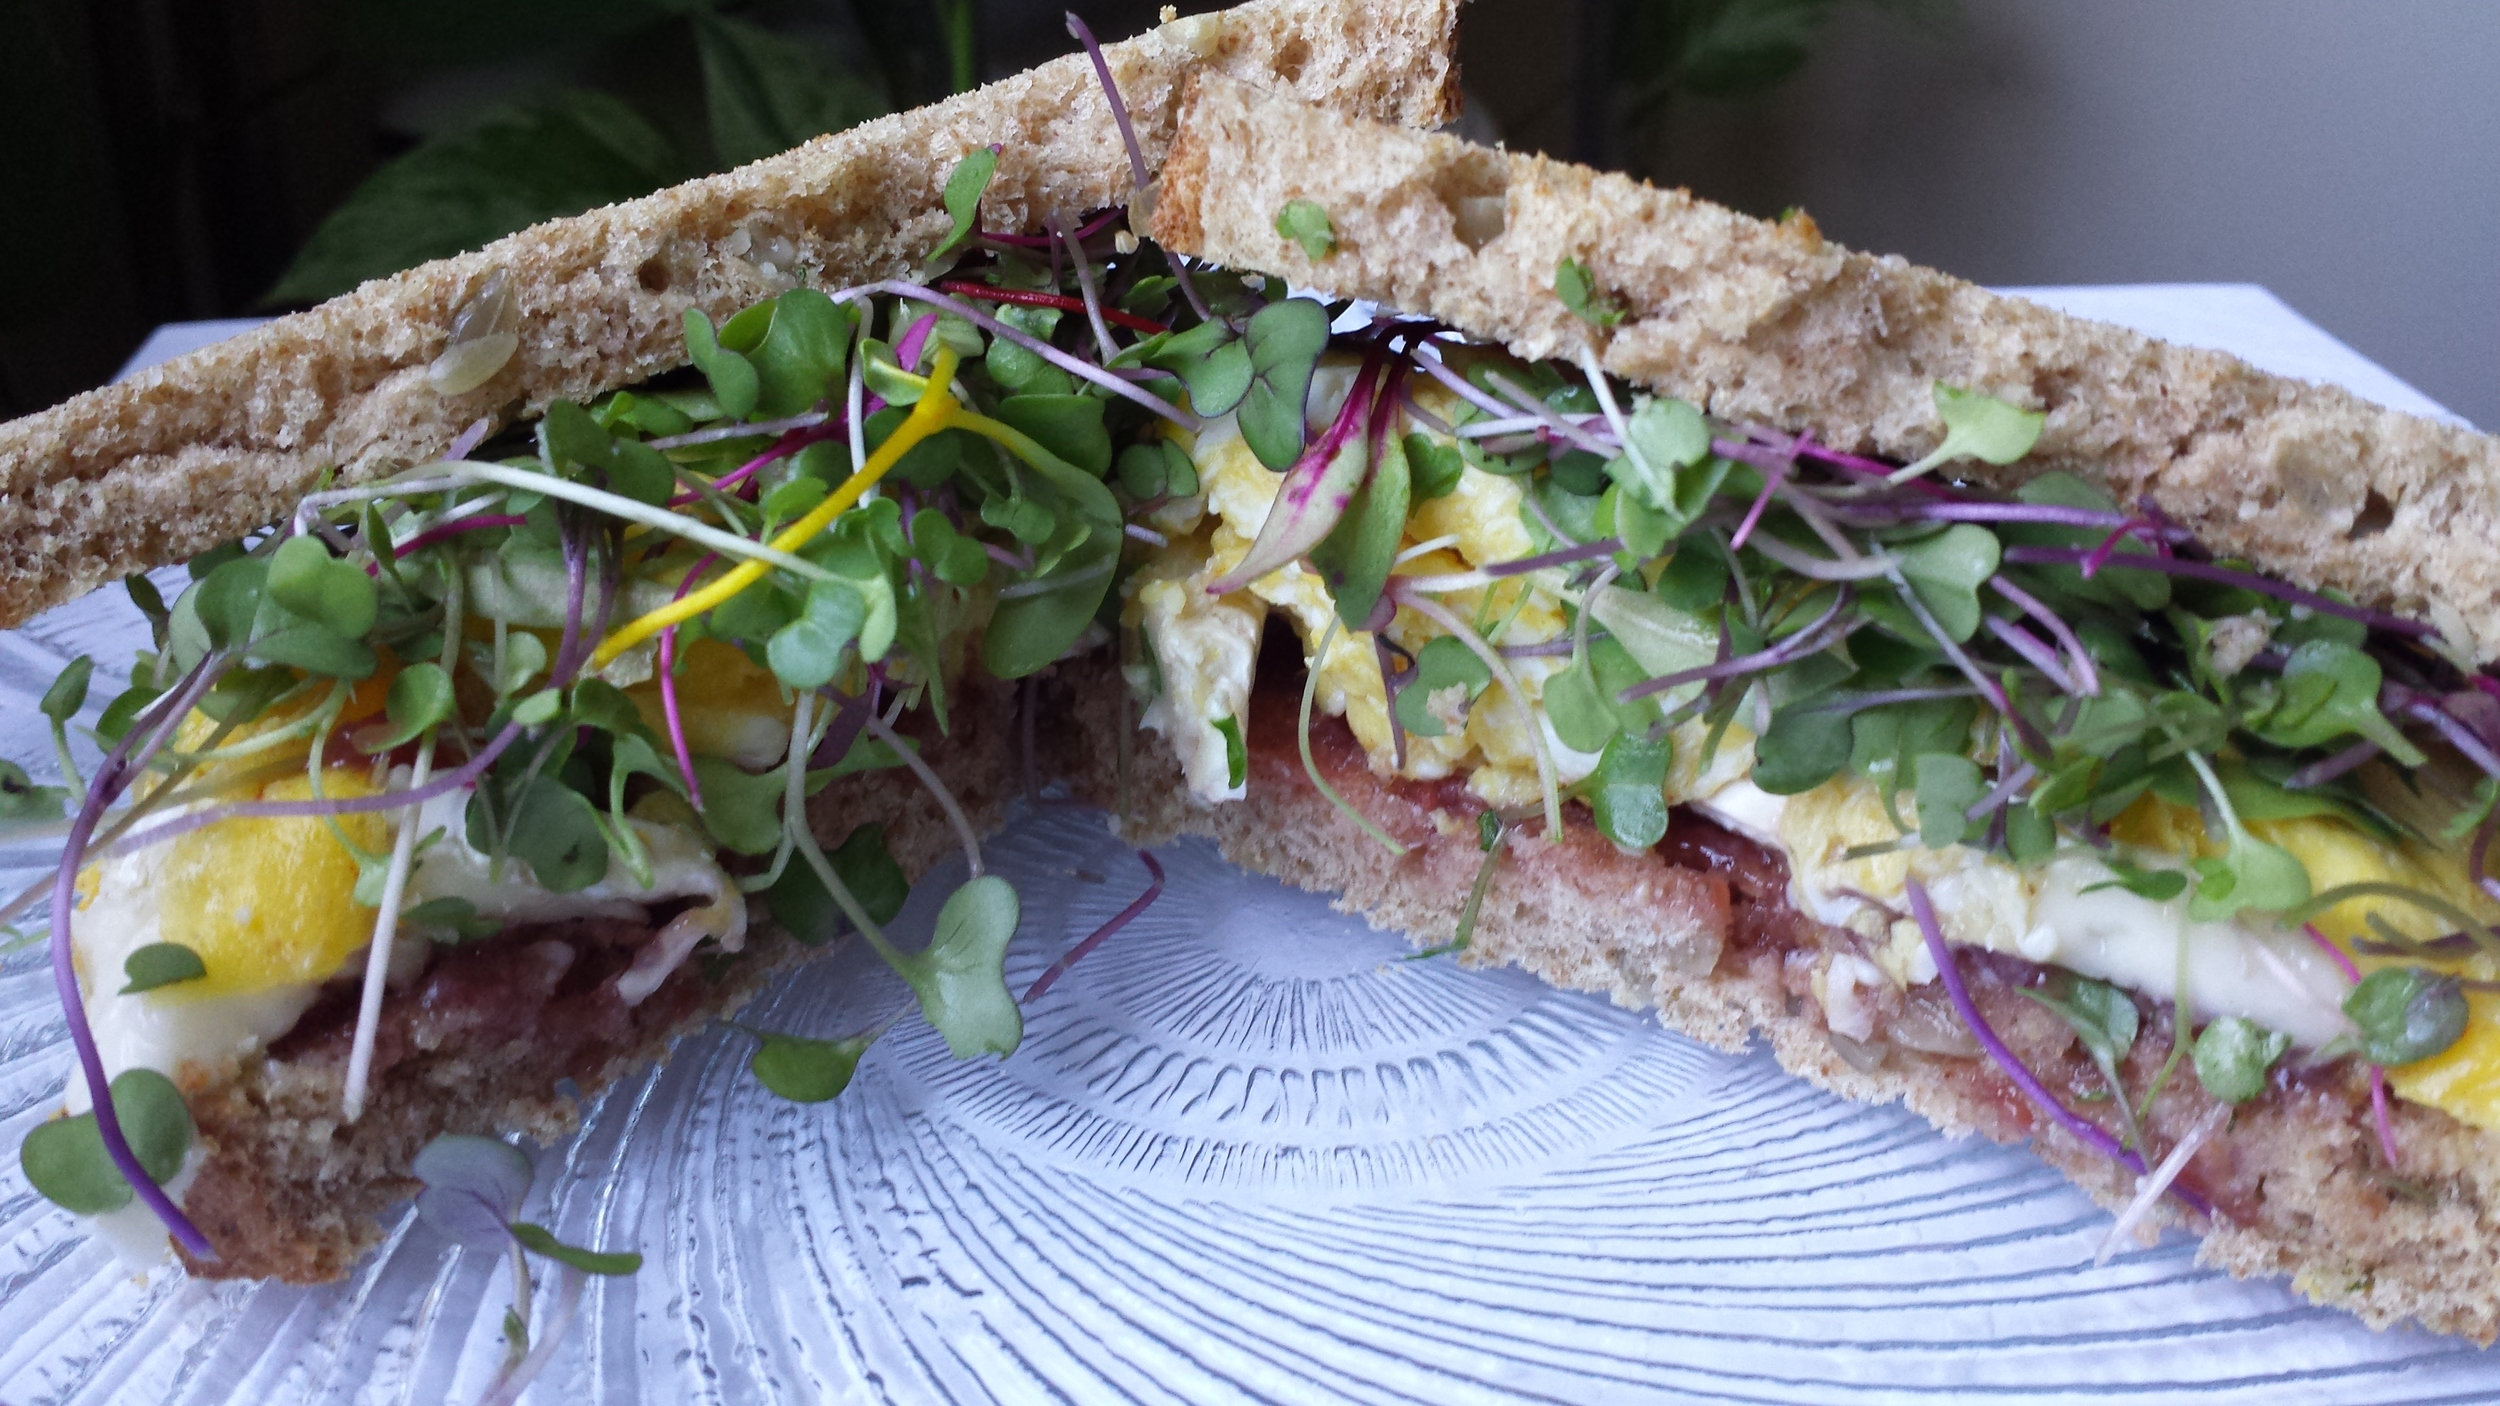 Microgreens gave an extra flavor accent in my favorite brunch sandwich (inspired by Lititz, PA's  Tomato Pie ): melted brie, scrambled egg, and raspberry jam on toasted sunflower bread!